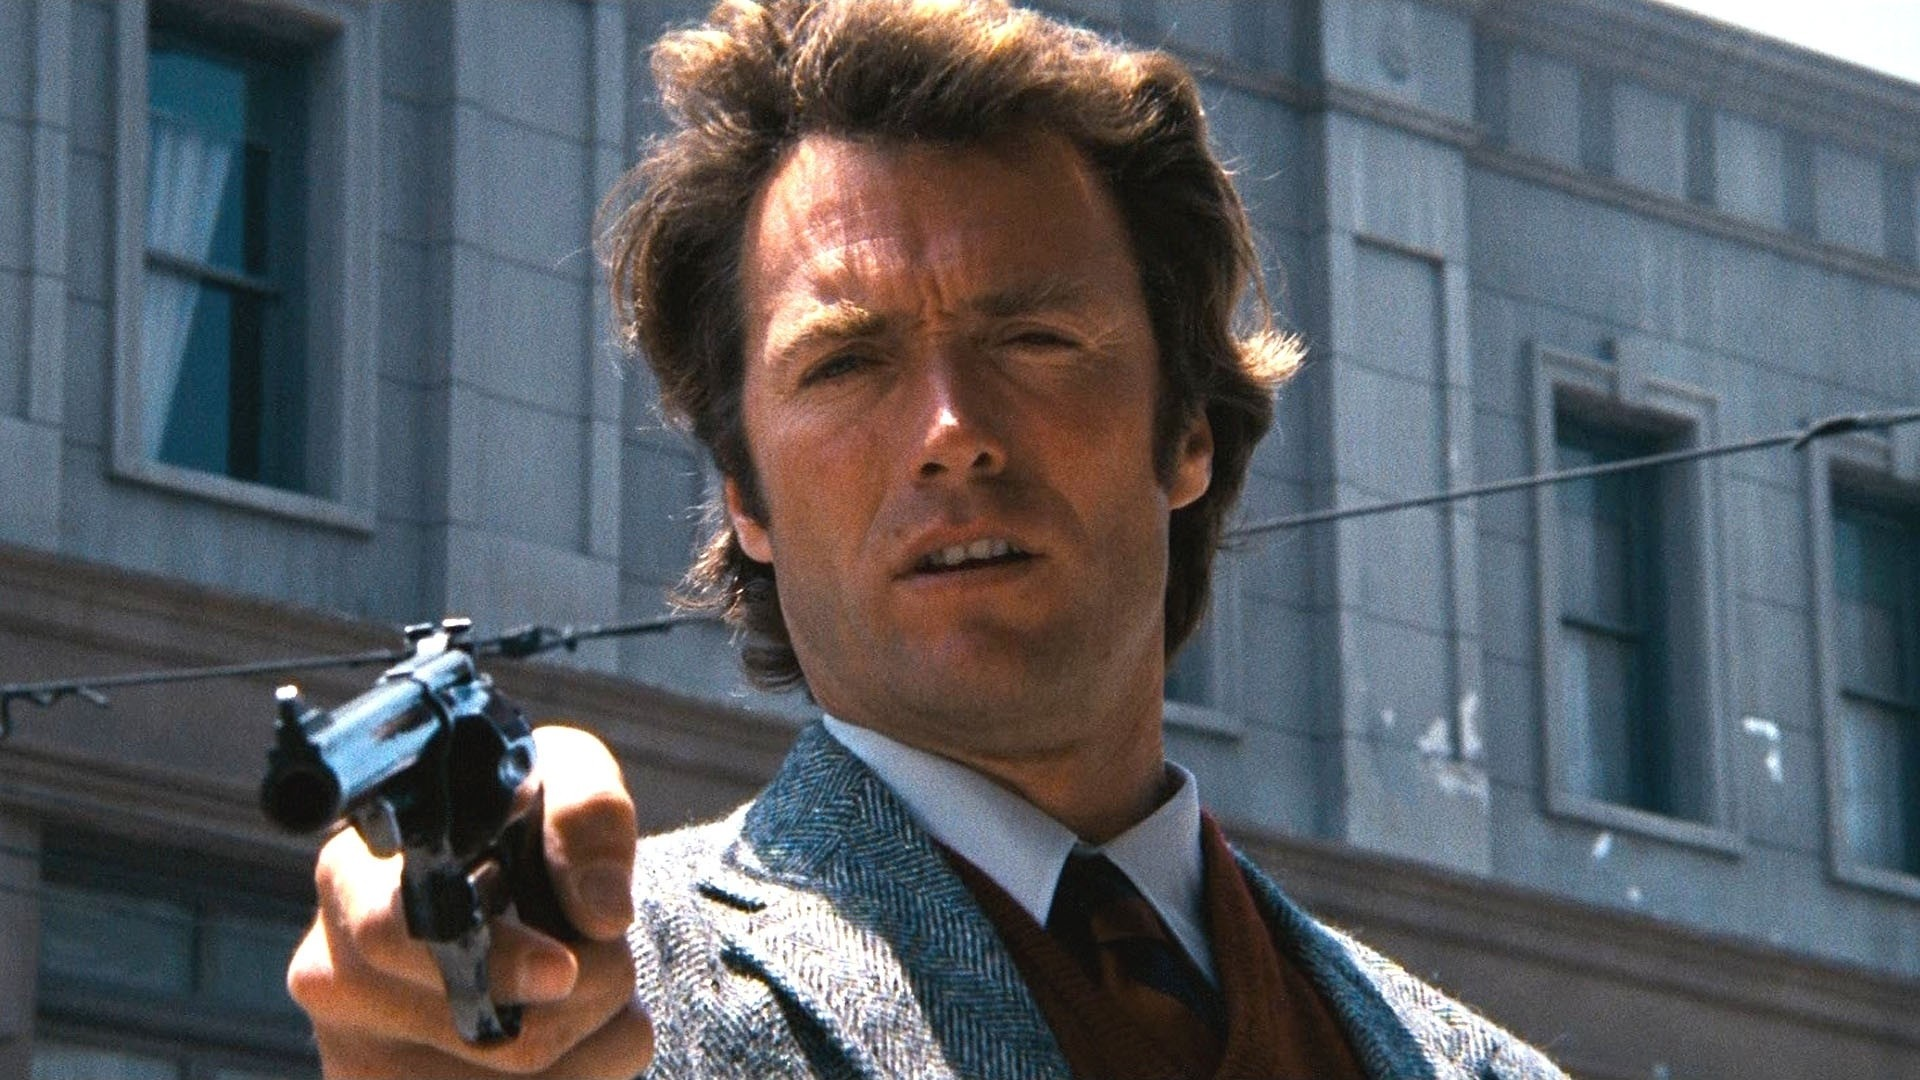 1920x1080 Movies police clint eastwood dirty harry people men actor wallpaper |   | 28083 | WallpaperUP